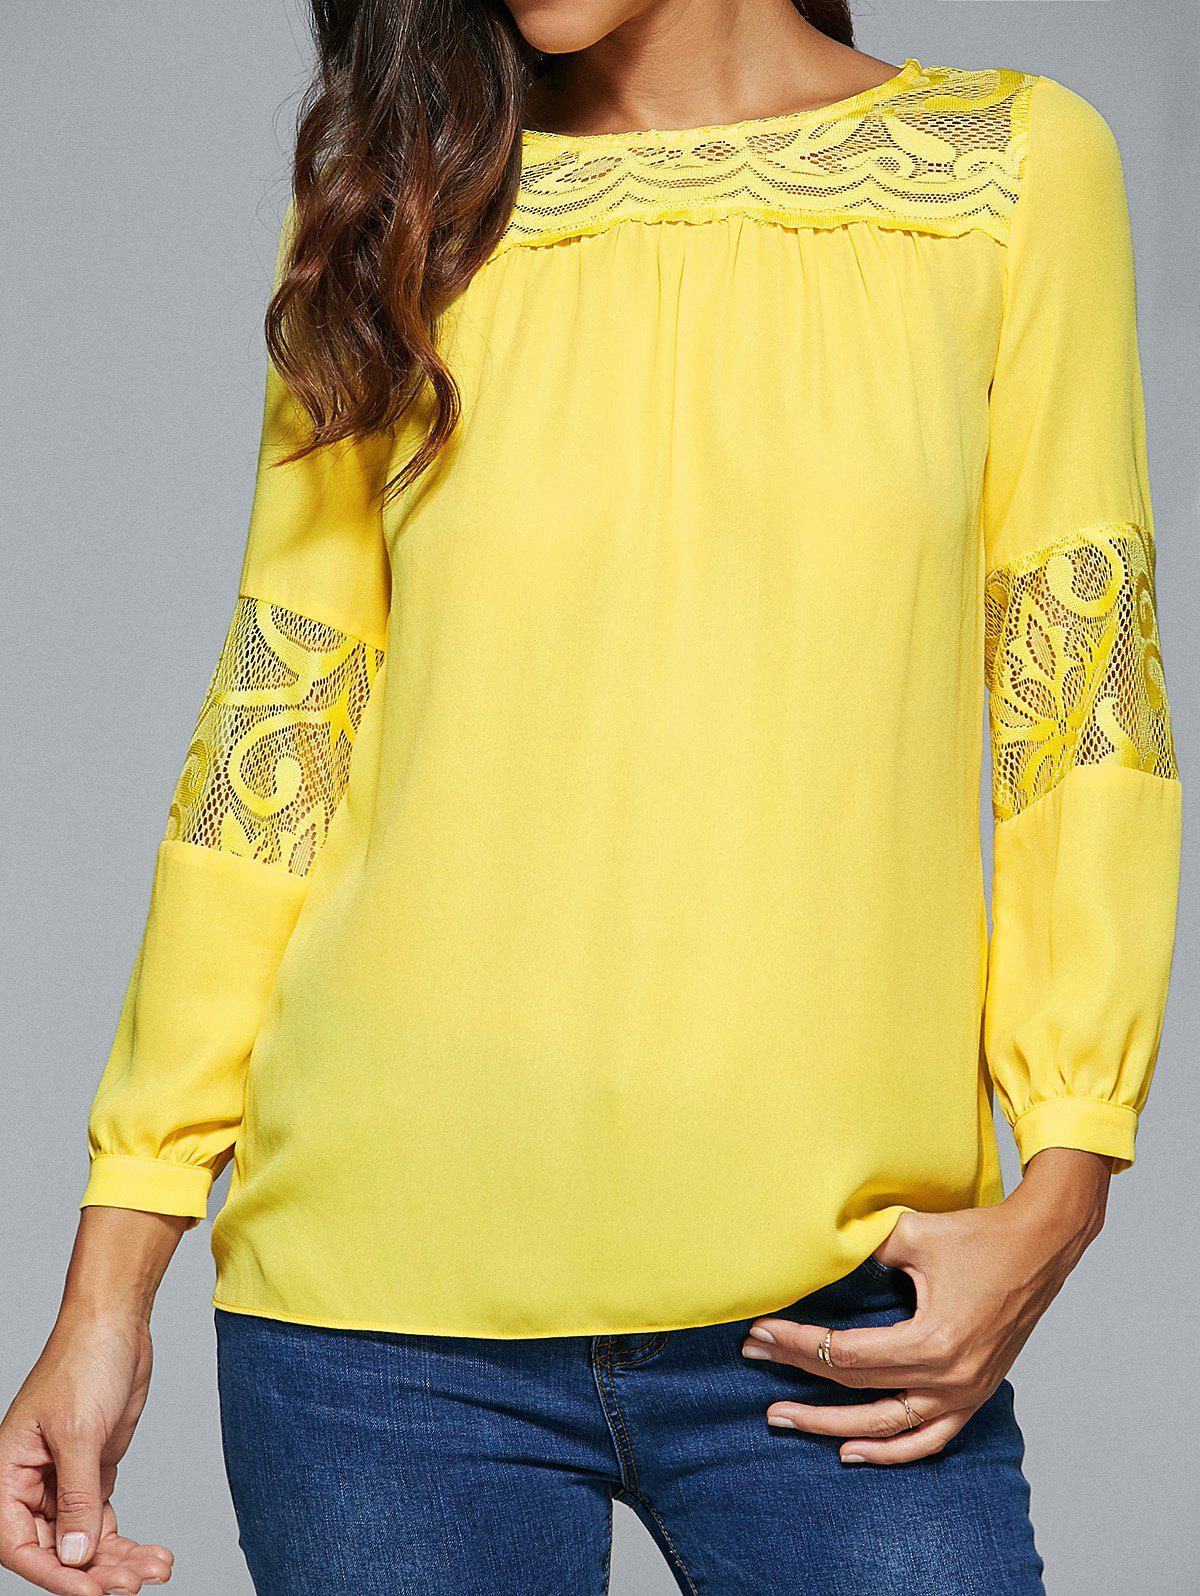 Lace Spliced Long Sleeve Blouse - YELLOW XL